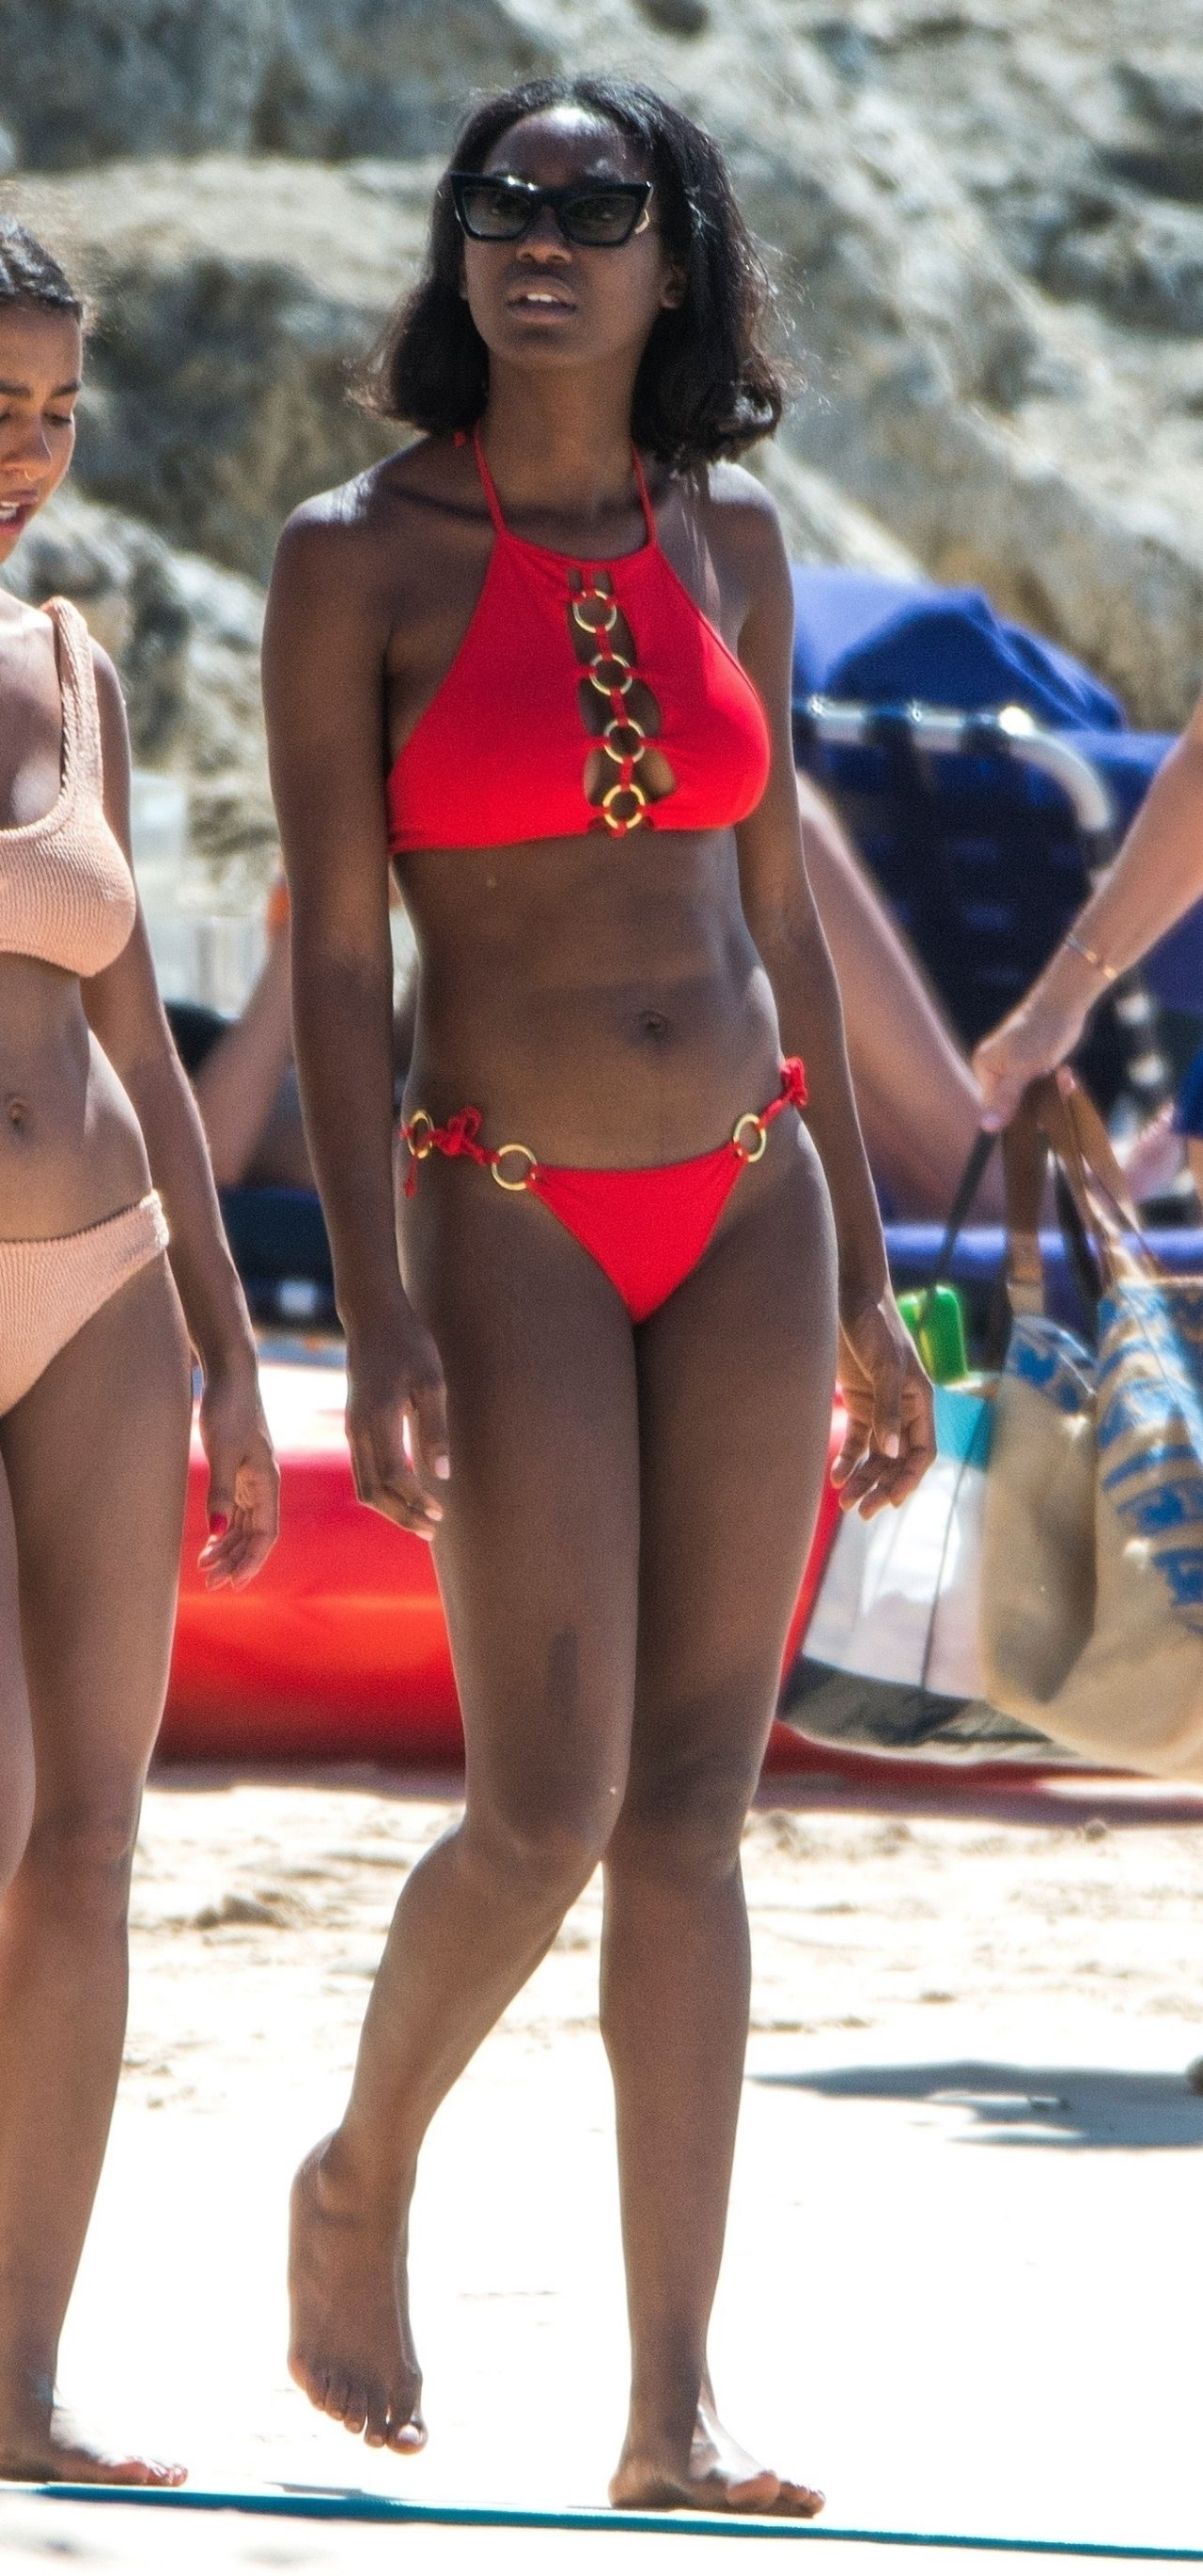 Celebrity Mouna Traore naked (93 photo), Tits, Bikini, Instagram, legs 2019